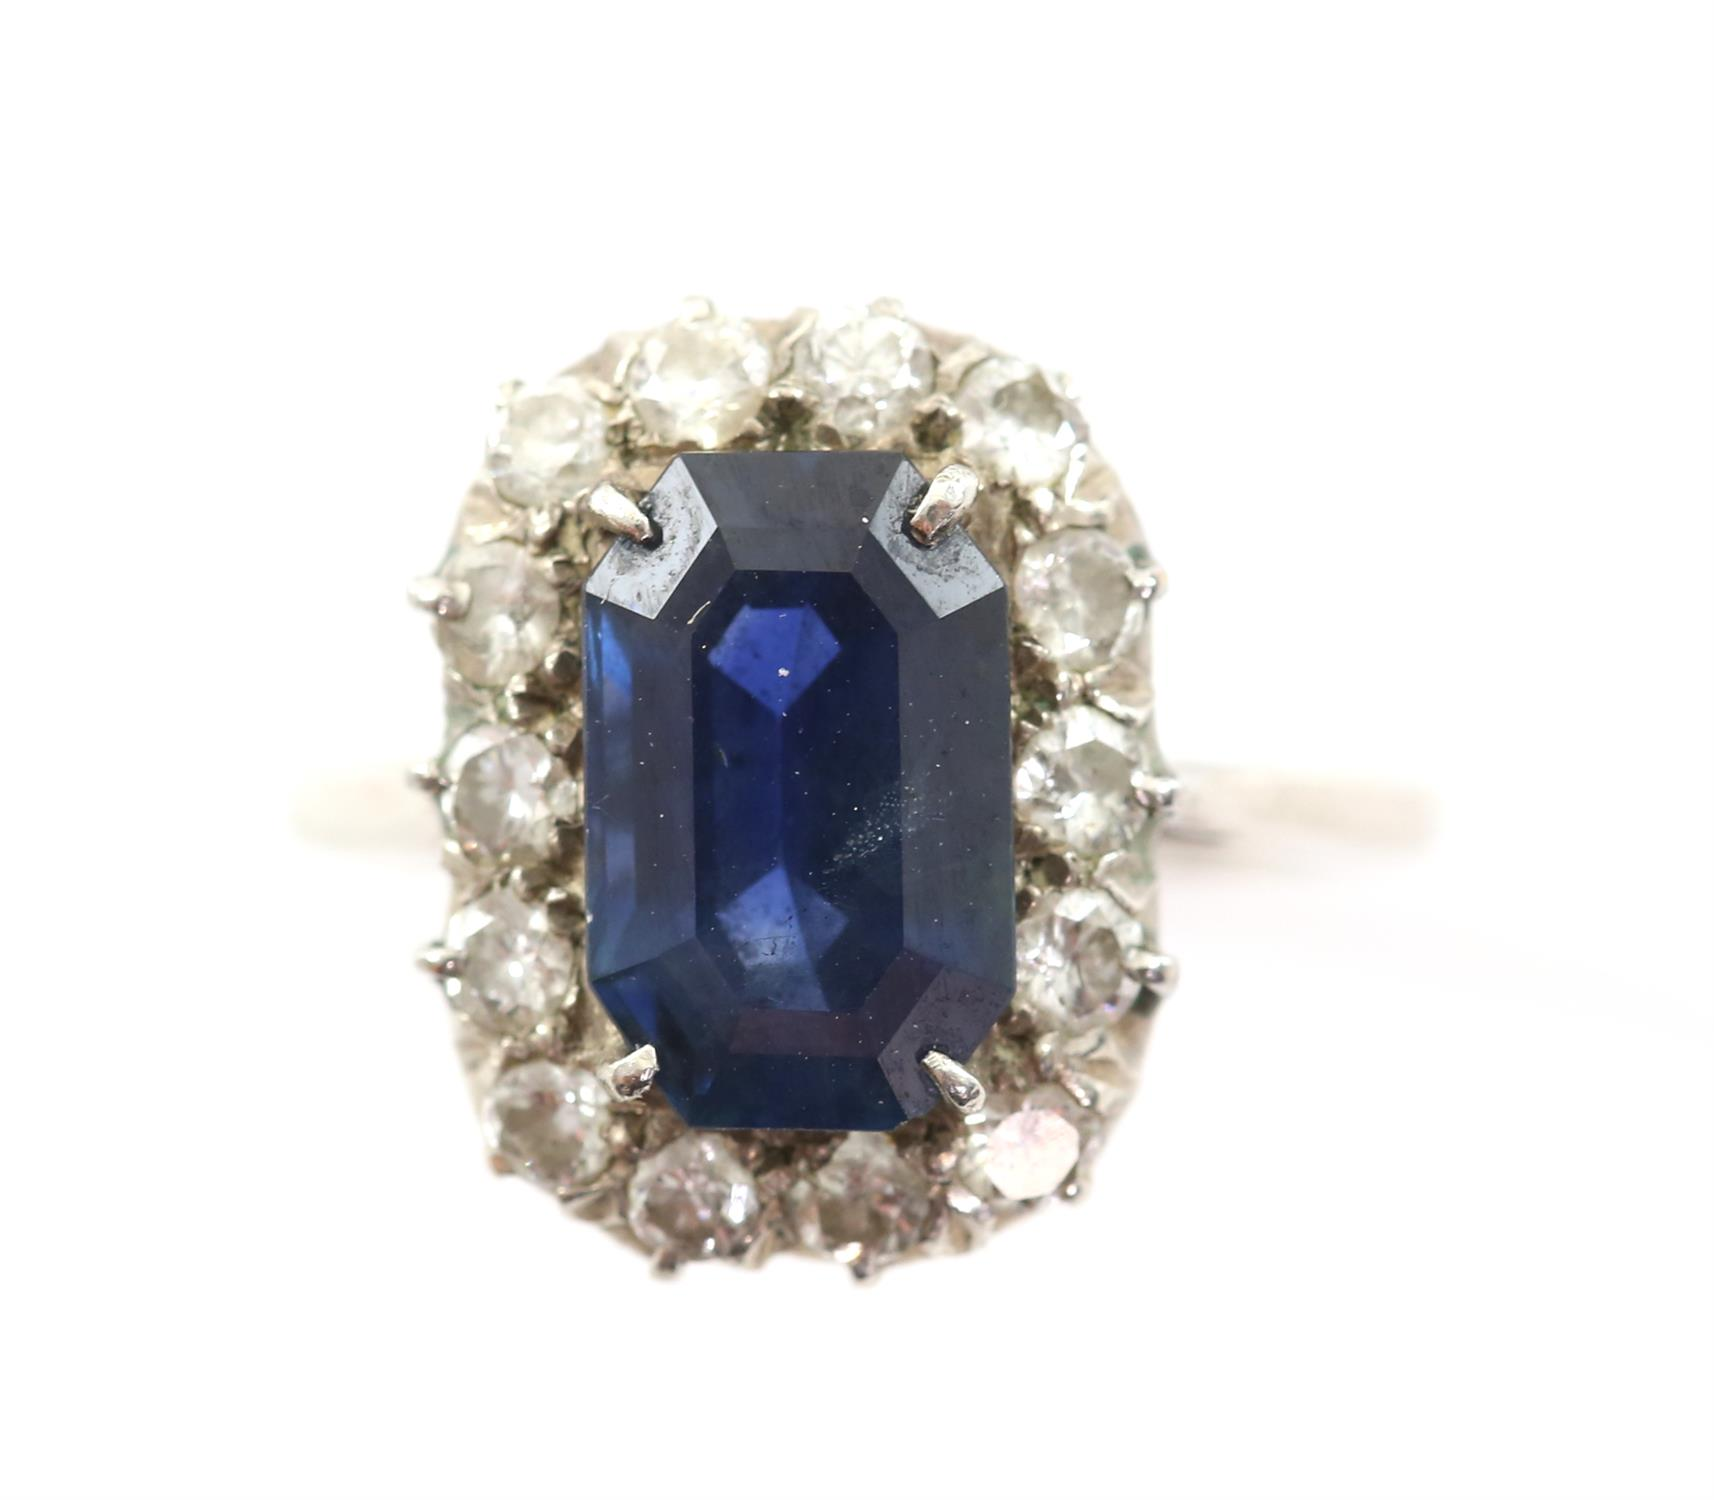 Sapphire and diamond cluster ring, with an emerald cut sapphire weighing an estimated 4.16 carats, - Image 3 of 3